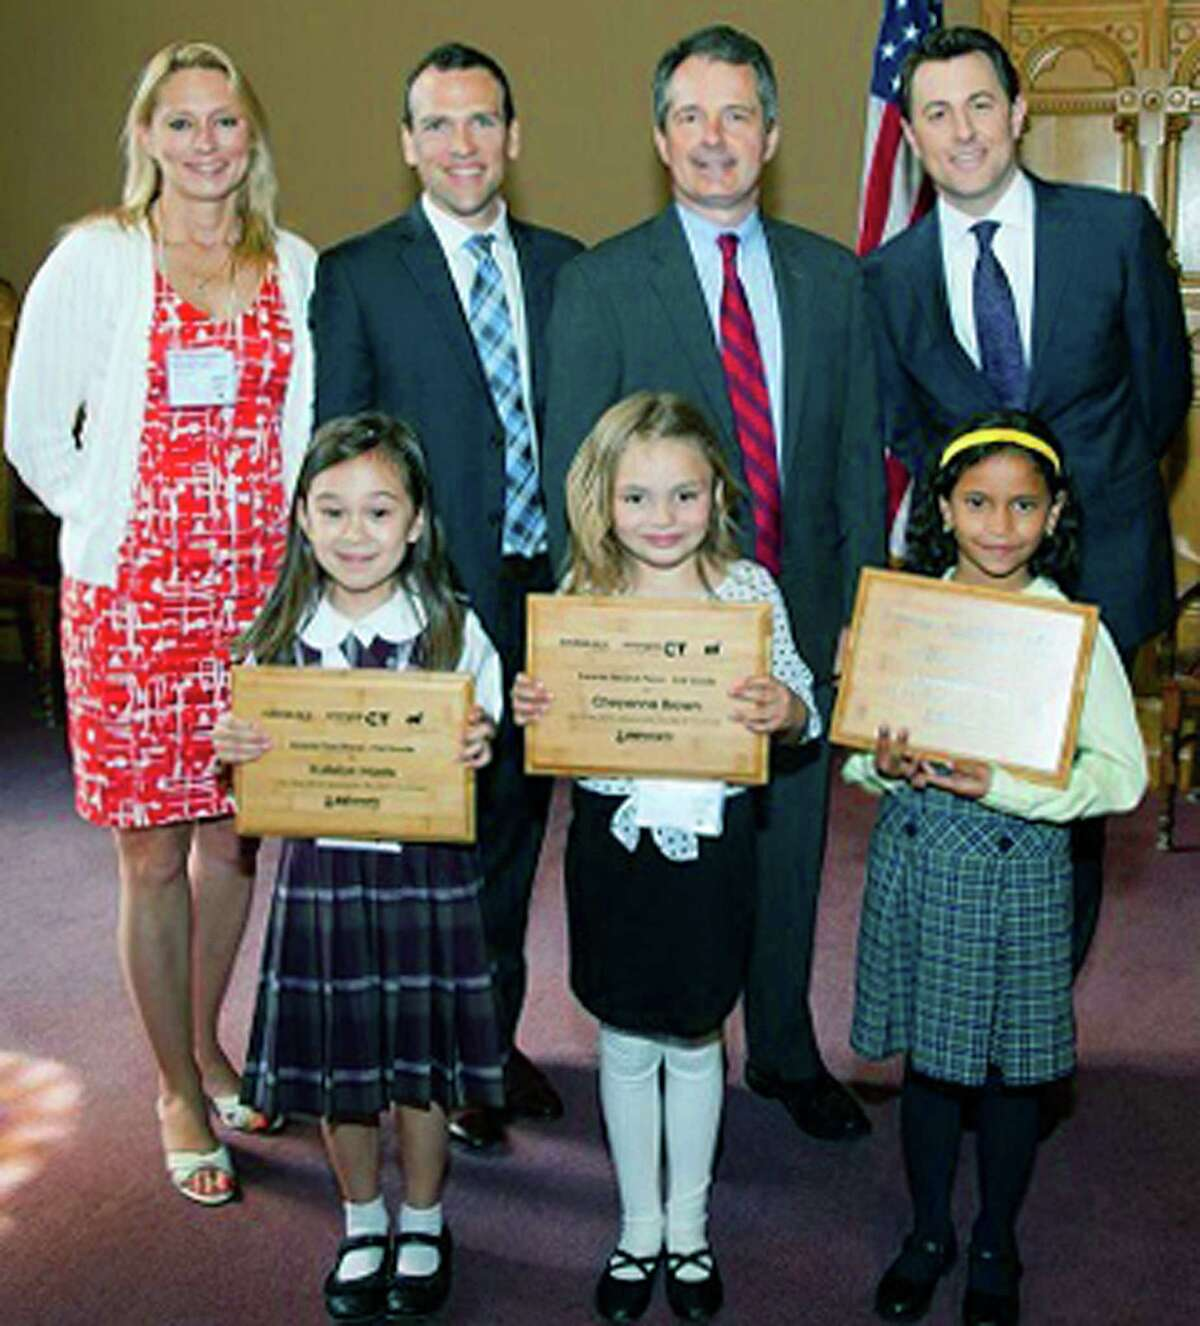 Cheyenne Brown, front middle, who just finished first grade at Northville School in New Milford, recently earned second place in the 11th annual eesmarts student contest. She is shown at the state Capitol in Hartford with, in back, from left, state Rep. Michelle Cook, of Torrington; Matt Gibbs, of Eversource; Pat McDonnell, of United Illuminating Co. and Todd Piro, of NBC Connecticut, as well as fellow student artists. Cheyenne created a poster with an illustration of a house and depicted energy- efficient tips that could be performed in each room. She received a $250 Amazon gift card and a commemorative plaque. For more information on the student contest and the eesmarts program, visit eesmarts.com.